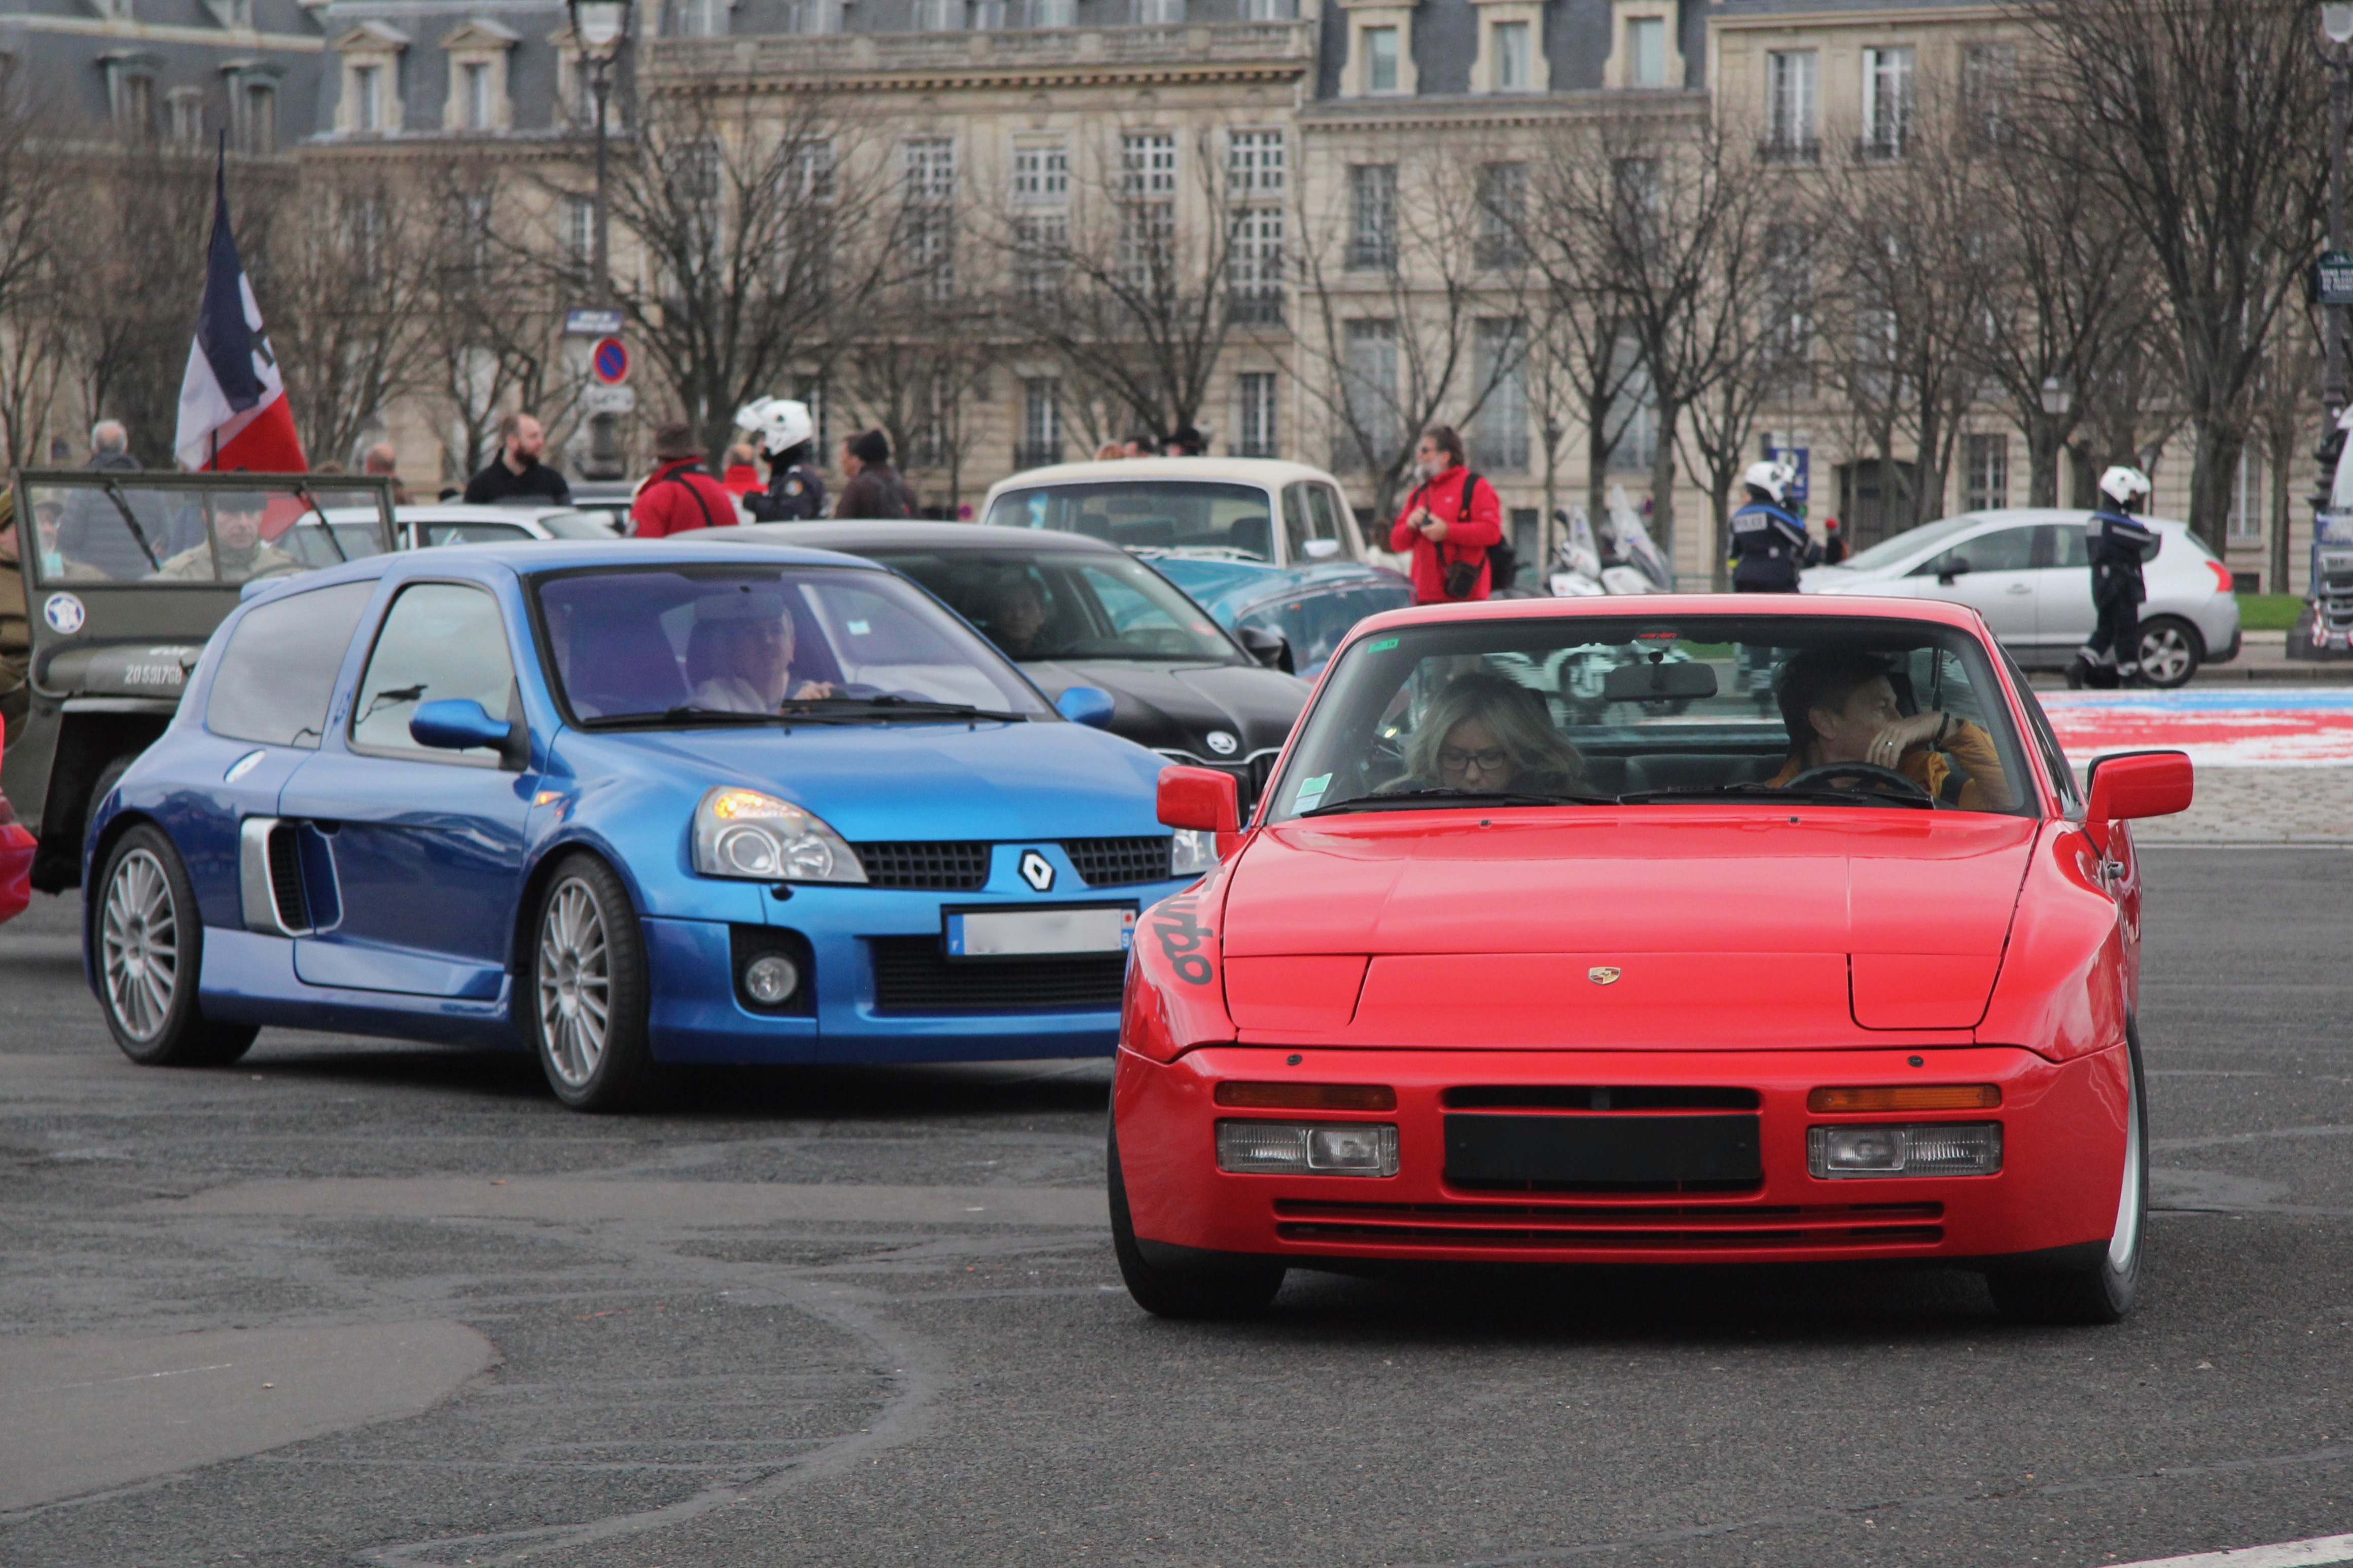 Porsche 944 Turbo - Traversée de Paris Hivernale 2019 - photo Ludo Ferrari